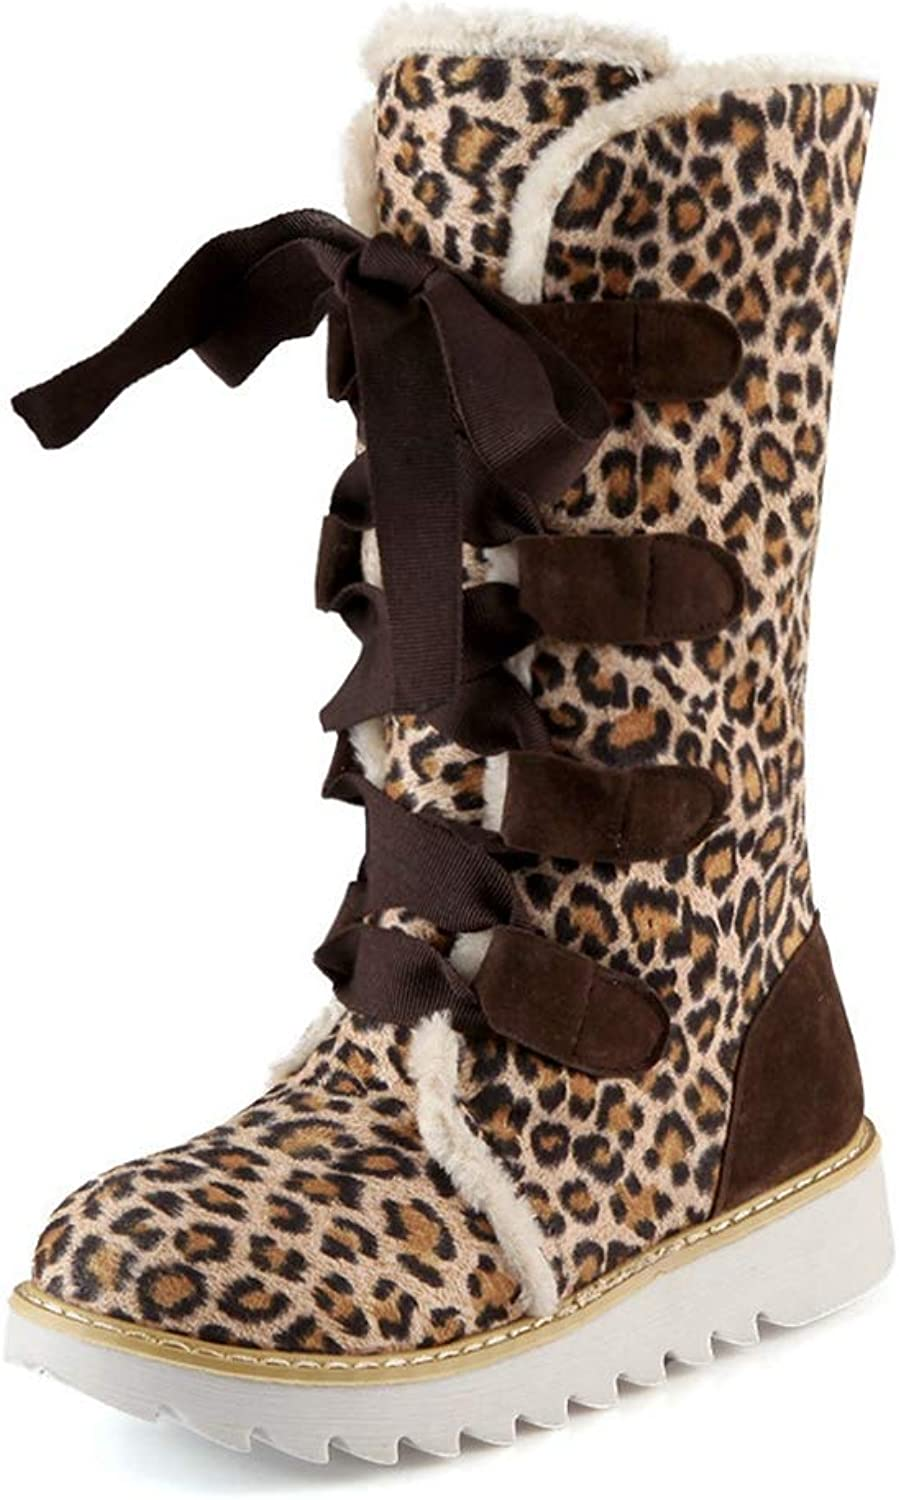 CYBLING Women's Winter Lace up Boots Outdoor Faux Suede Warm Fur Mid Calf Snow Boots